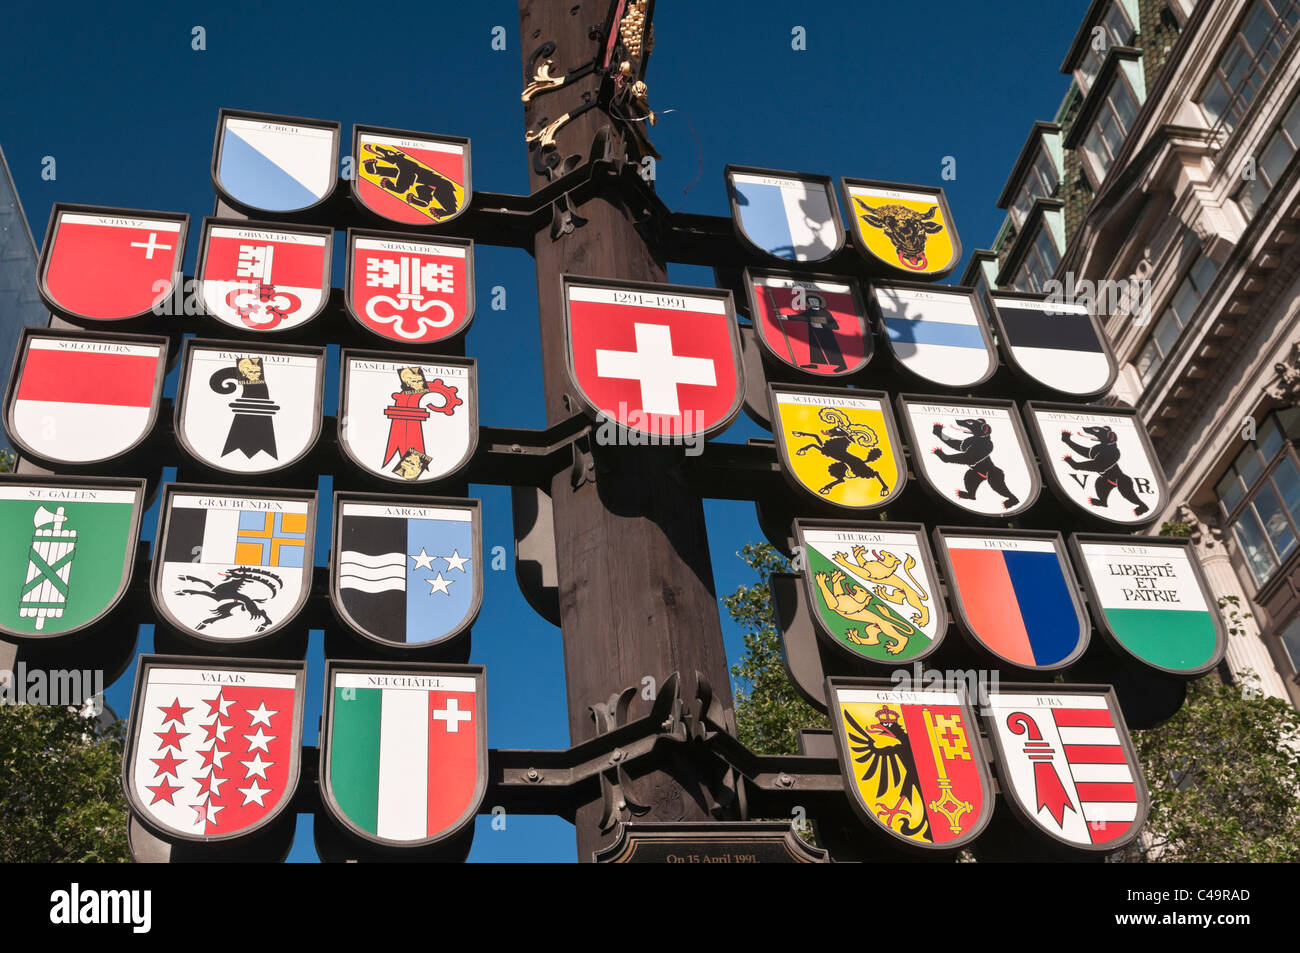 Cantonal tree sign of Swiss cantons at Swiss Court Leicester Square London UK - Stock Image